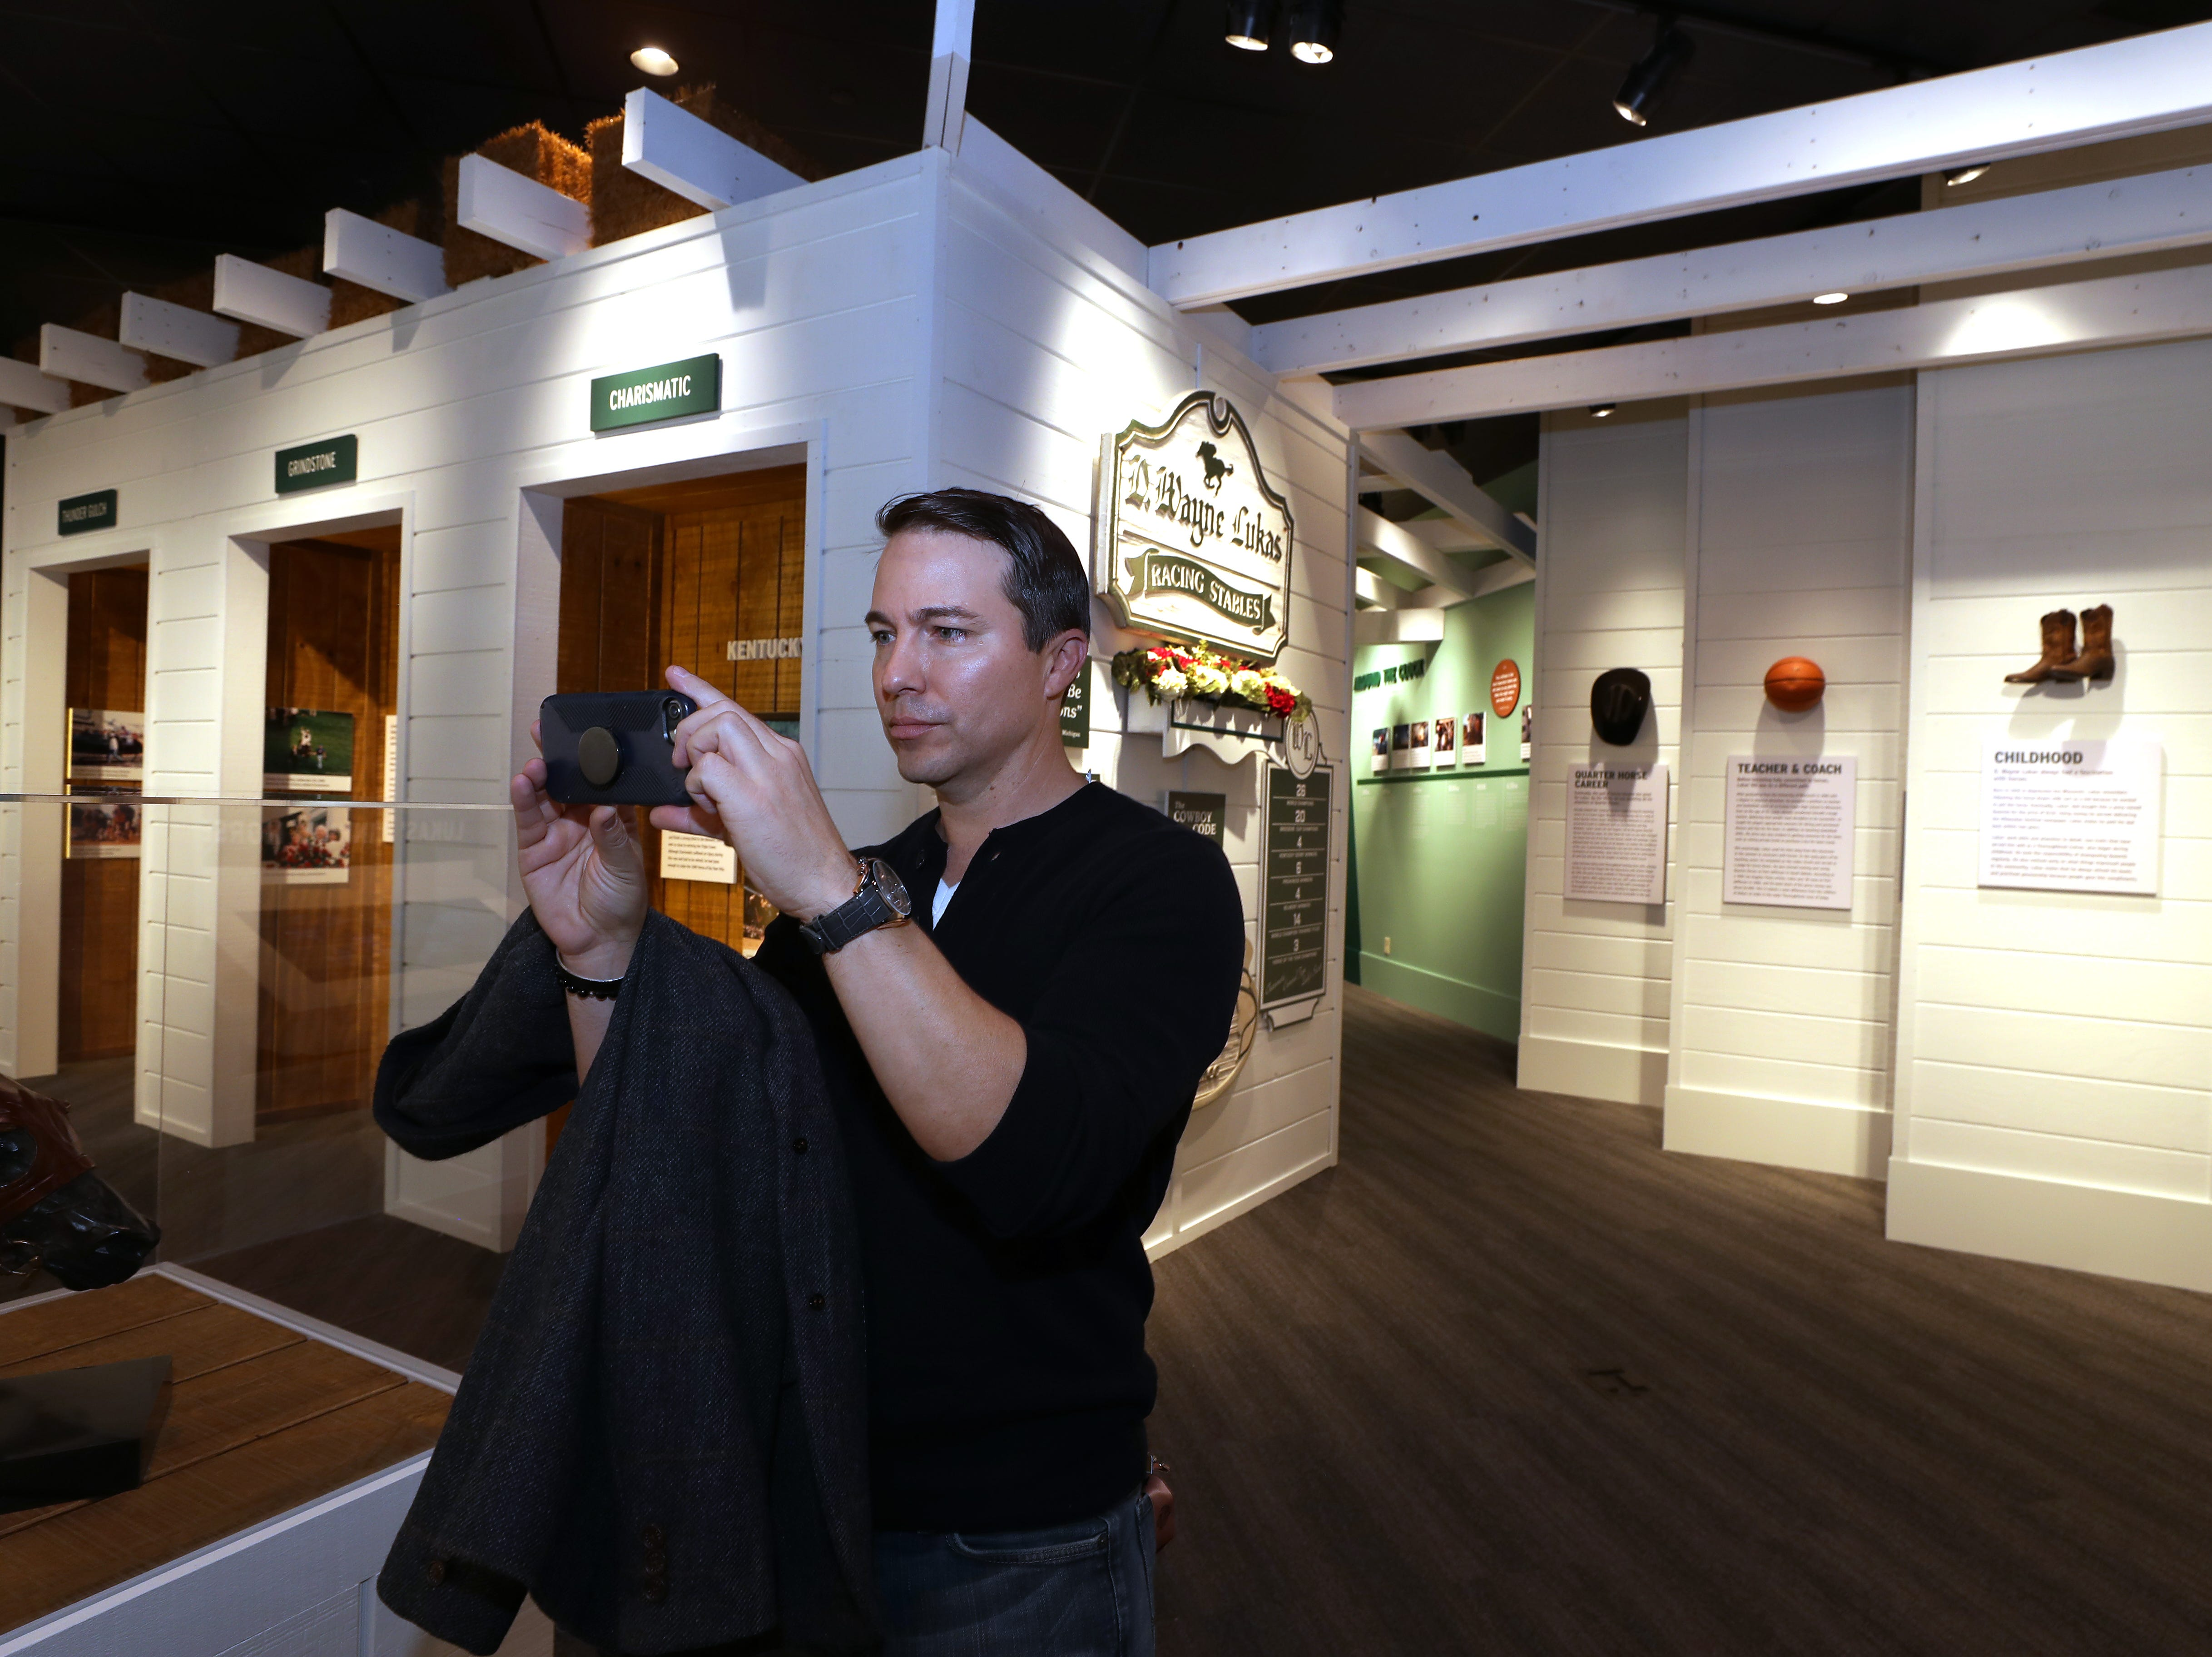 Laffit Pincay, of NBC Sports, takes a tour of the Kentucky Derby Museum expansion ahead of the grand exhibit reveal.  He was viewing the D. Wayne Lukas gallery.  Pinclay will be the master of ceremonies for the event.  Oct. 31, 2018